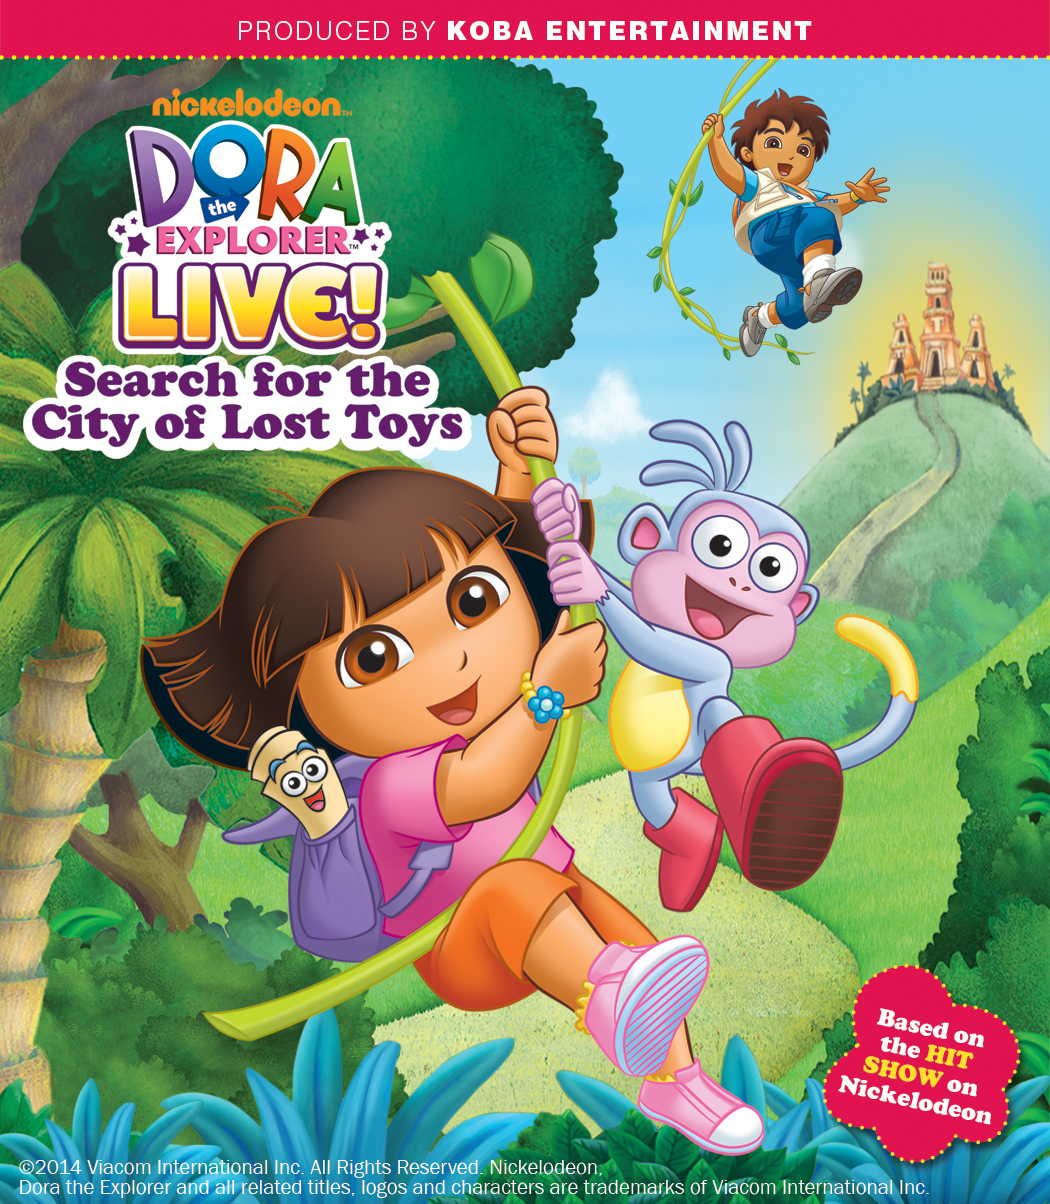 Dora The Explorer Live Show in London